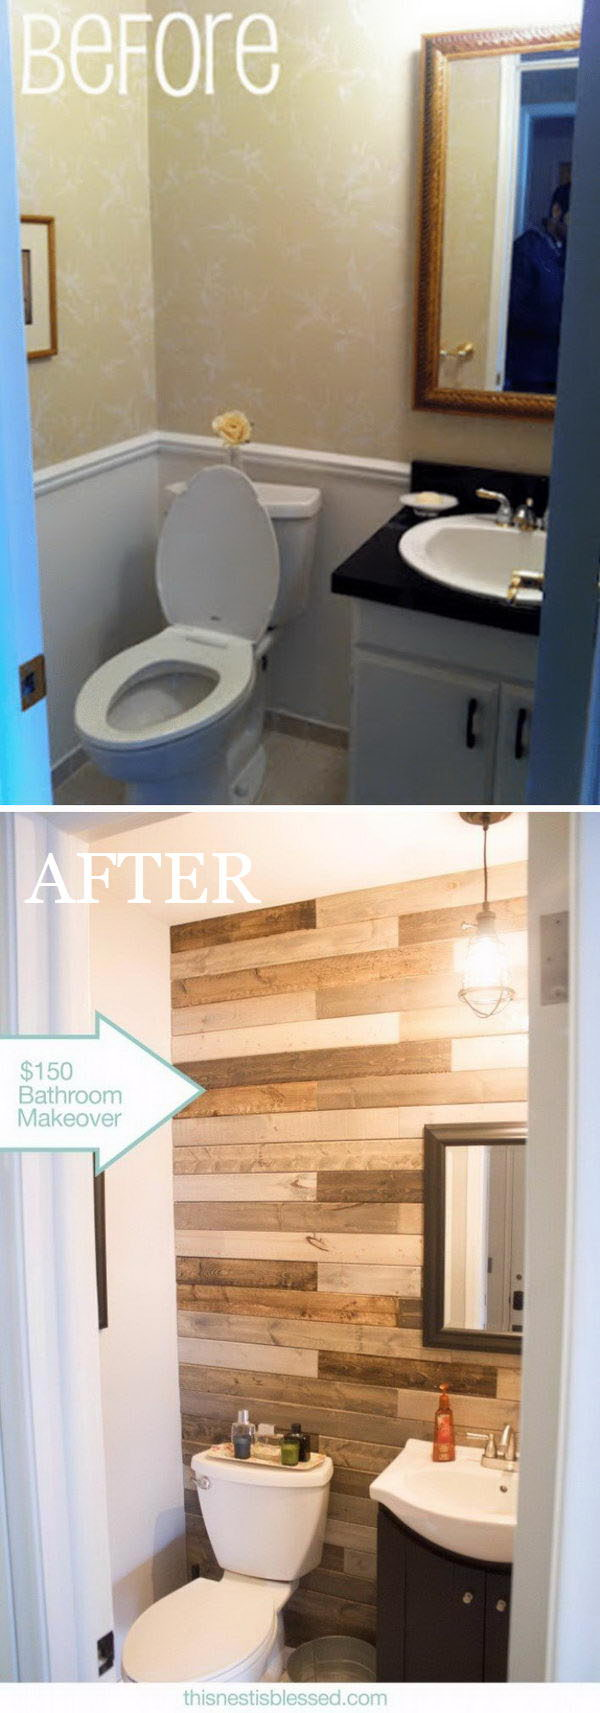 $150 Bathroom Makeover with DIY Pallet Wall without Pallets.